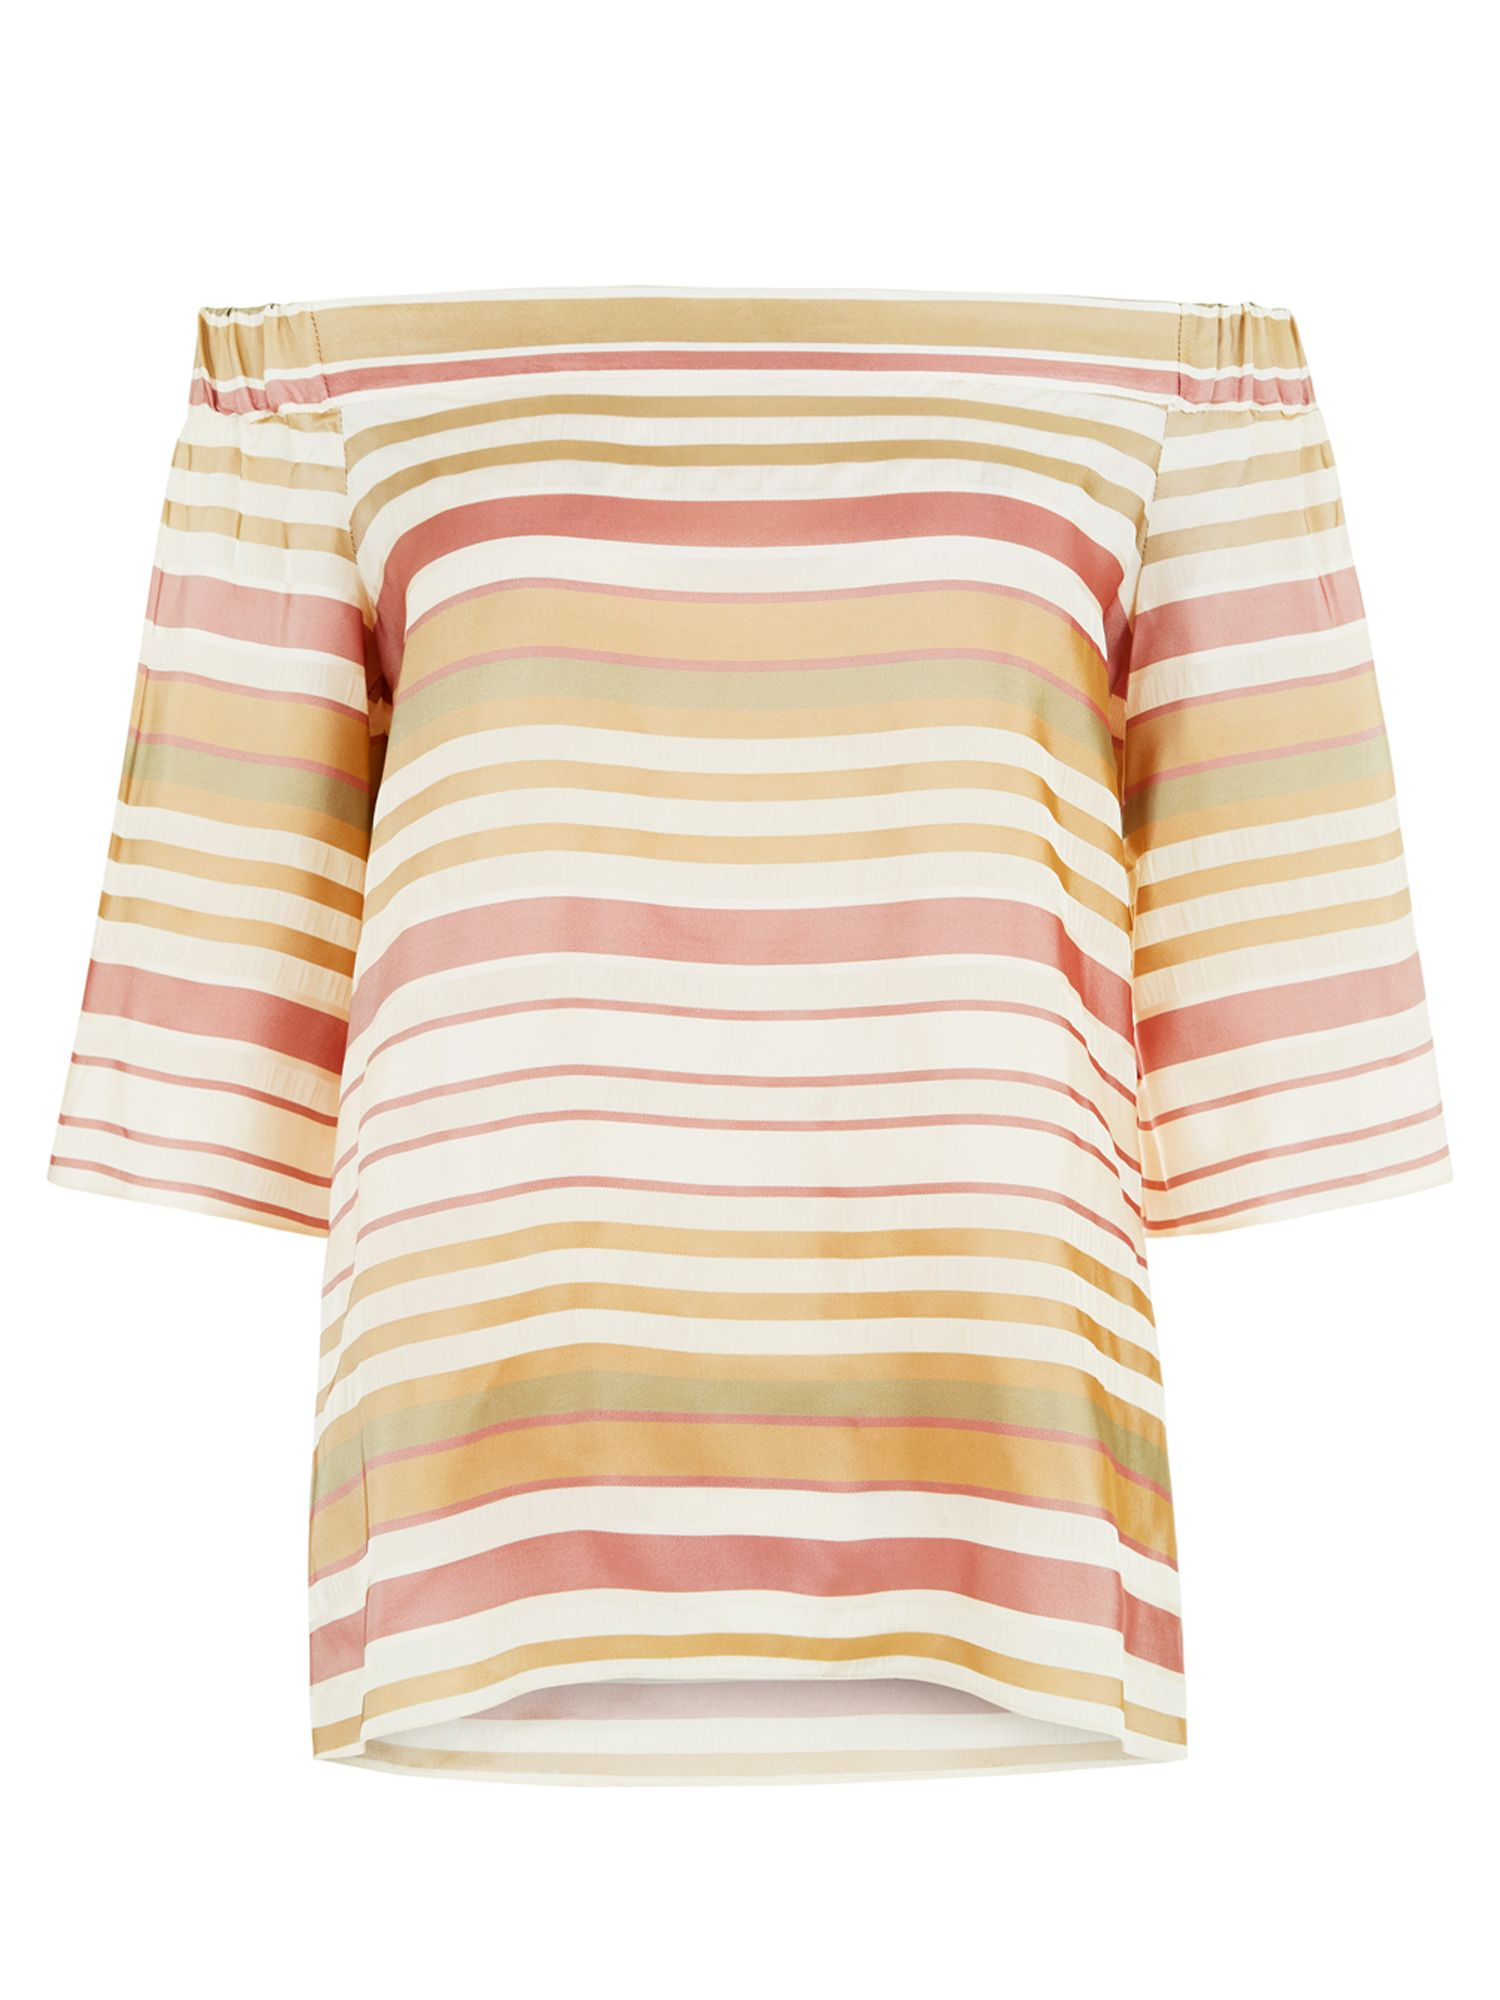 Hobbs Elsie Top, Multi-Coloured